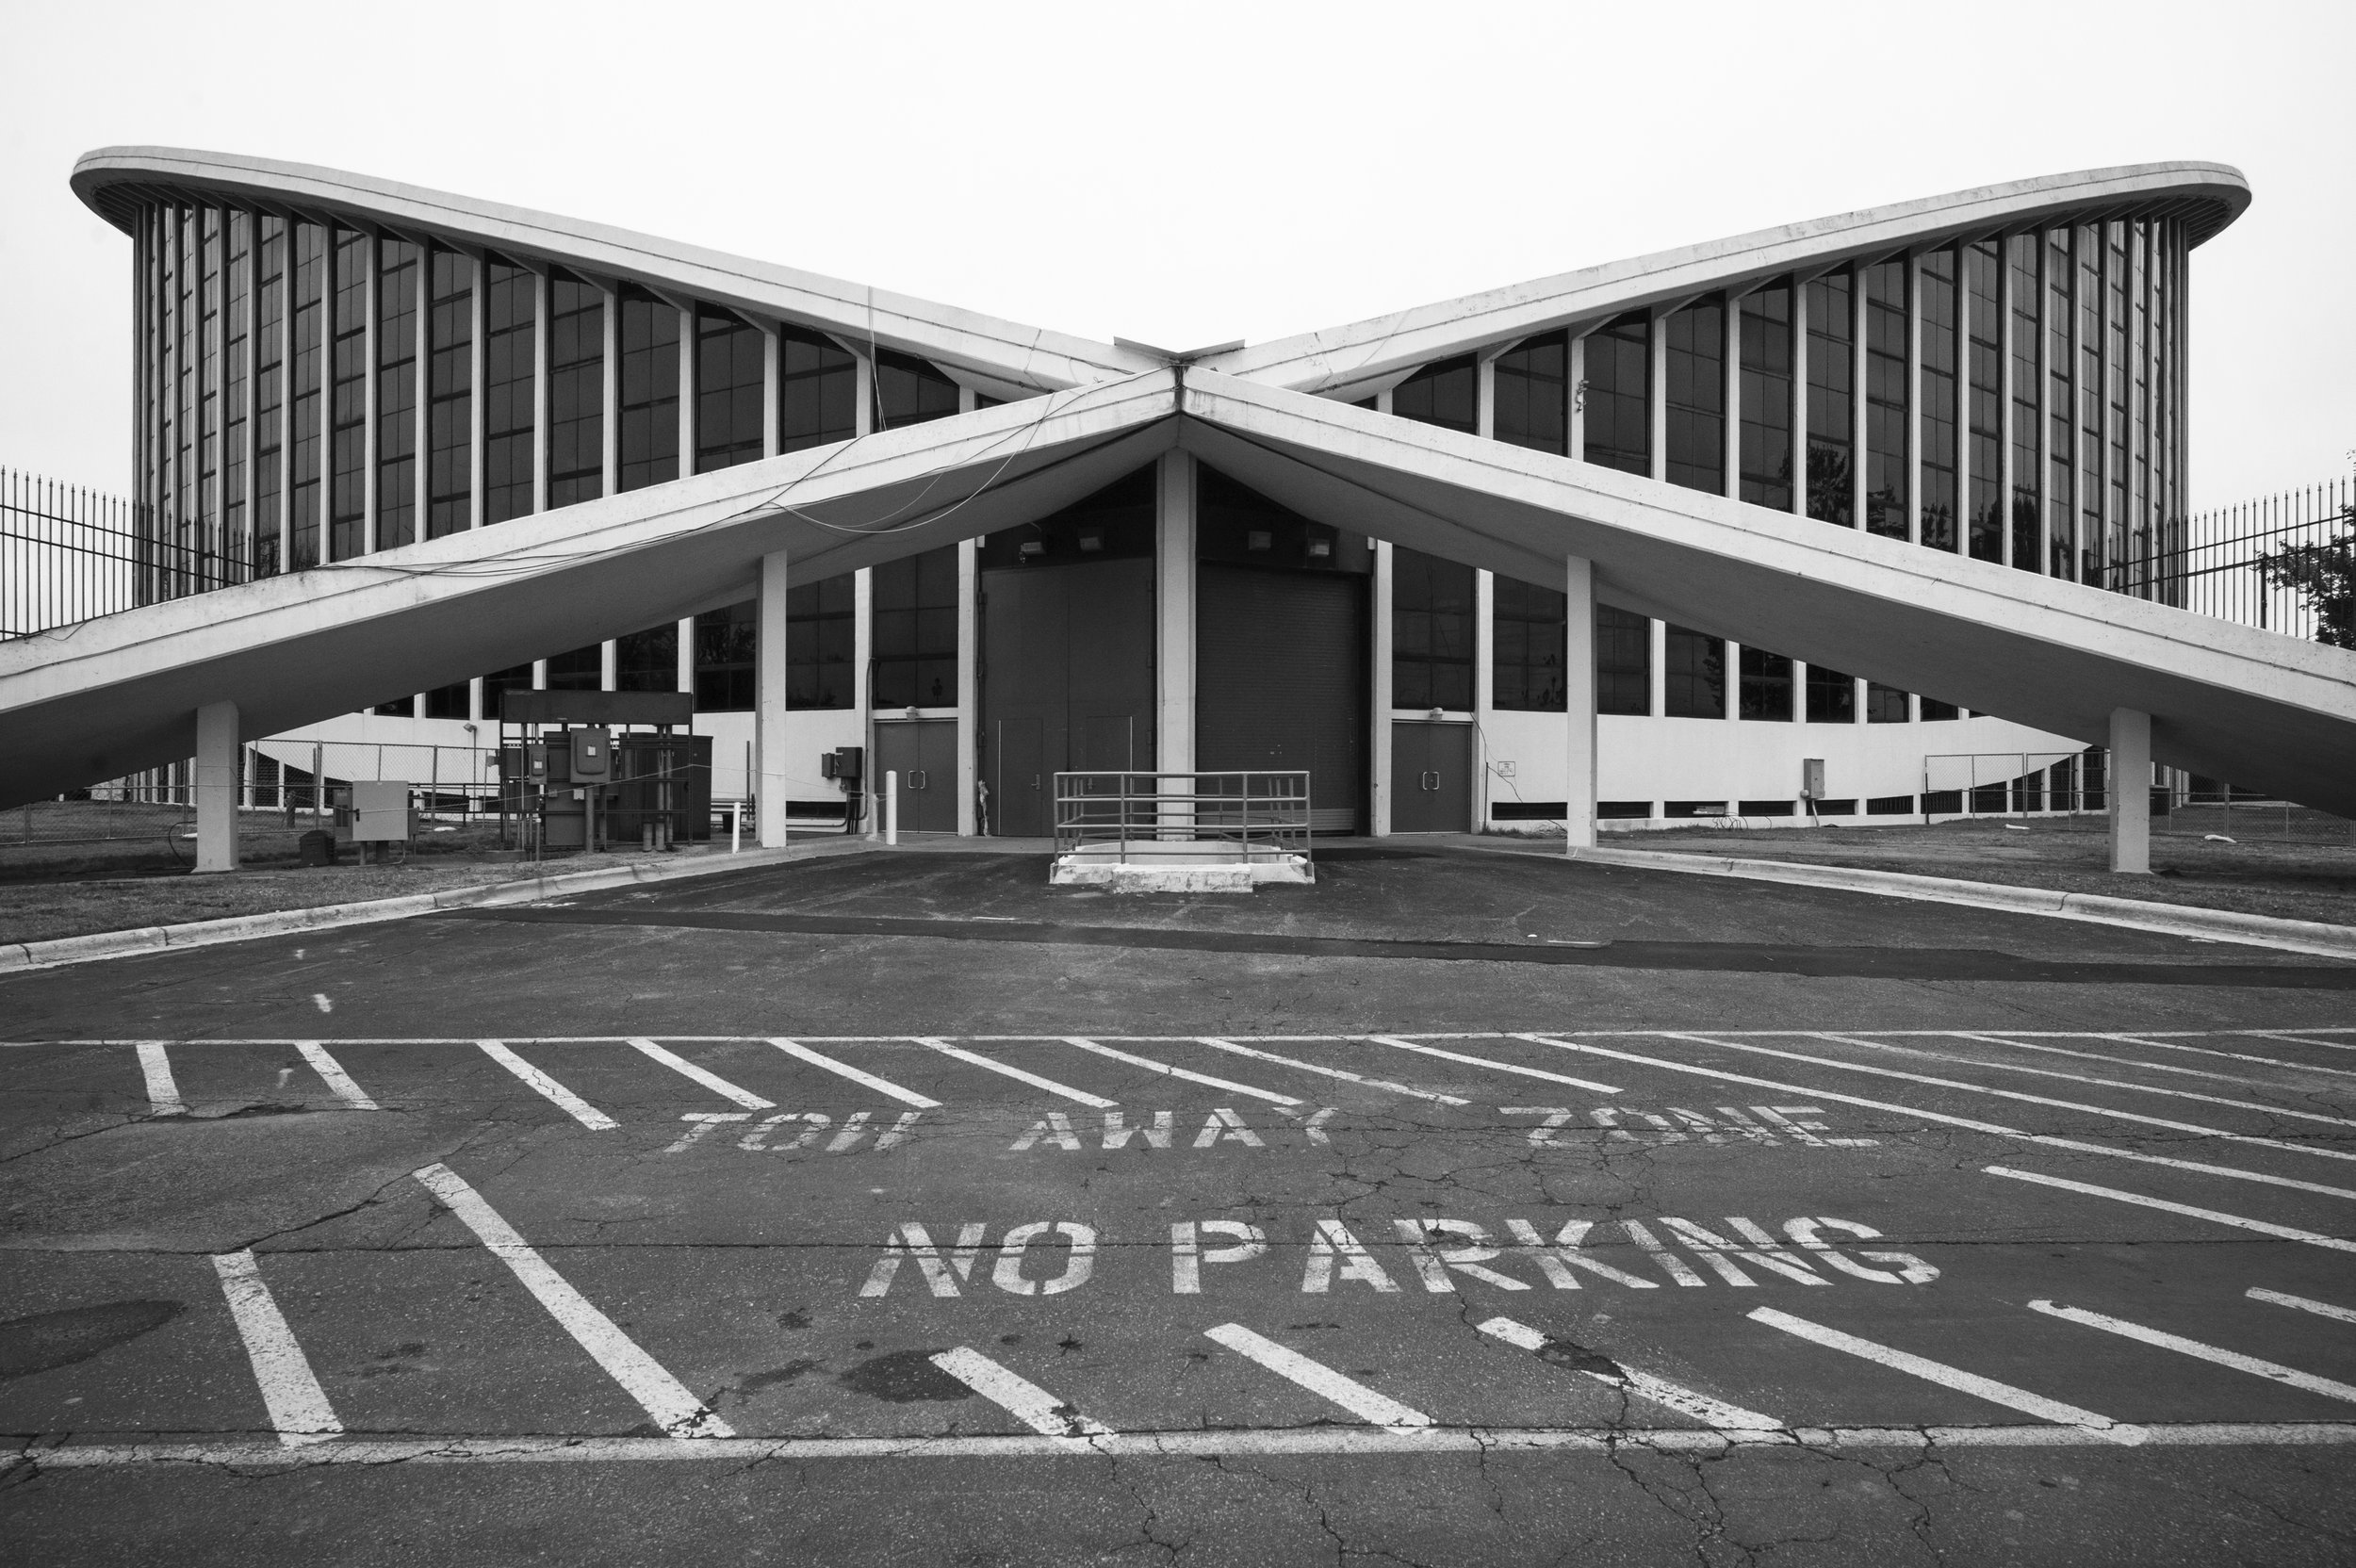 We are fortunate to have a world class mid-century modern structure like Dorton Arena in the Triangle!